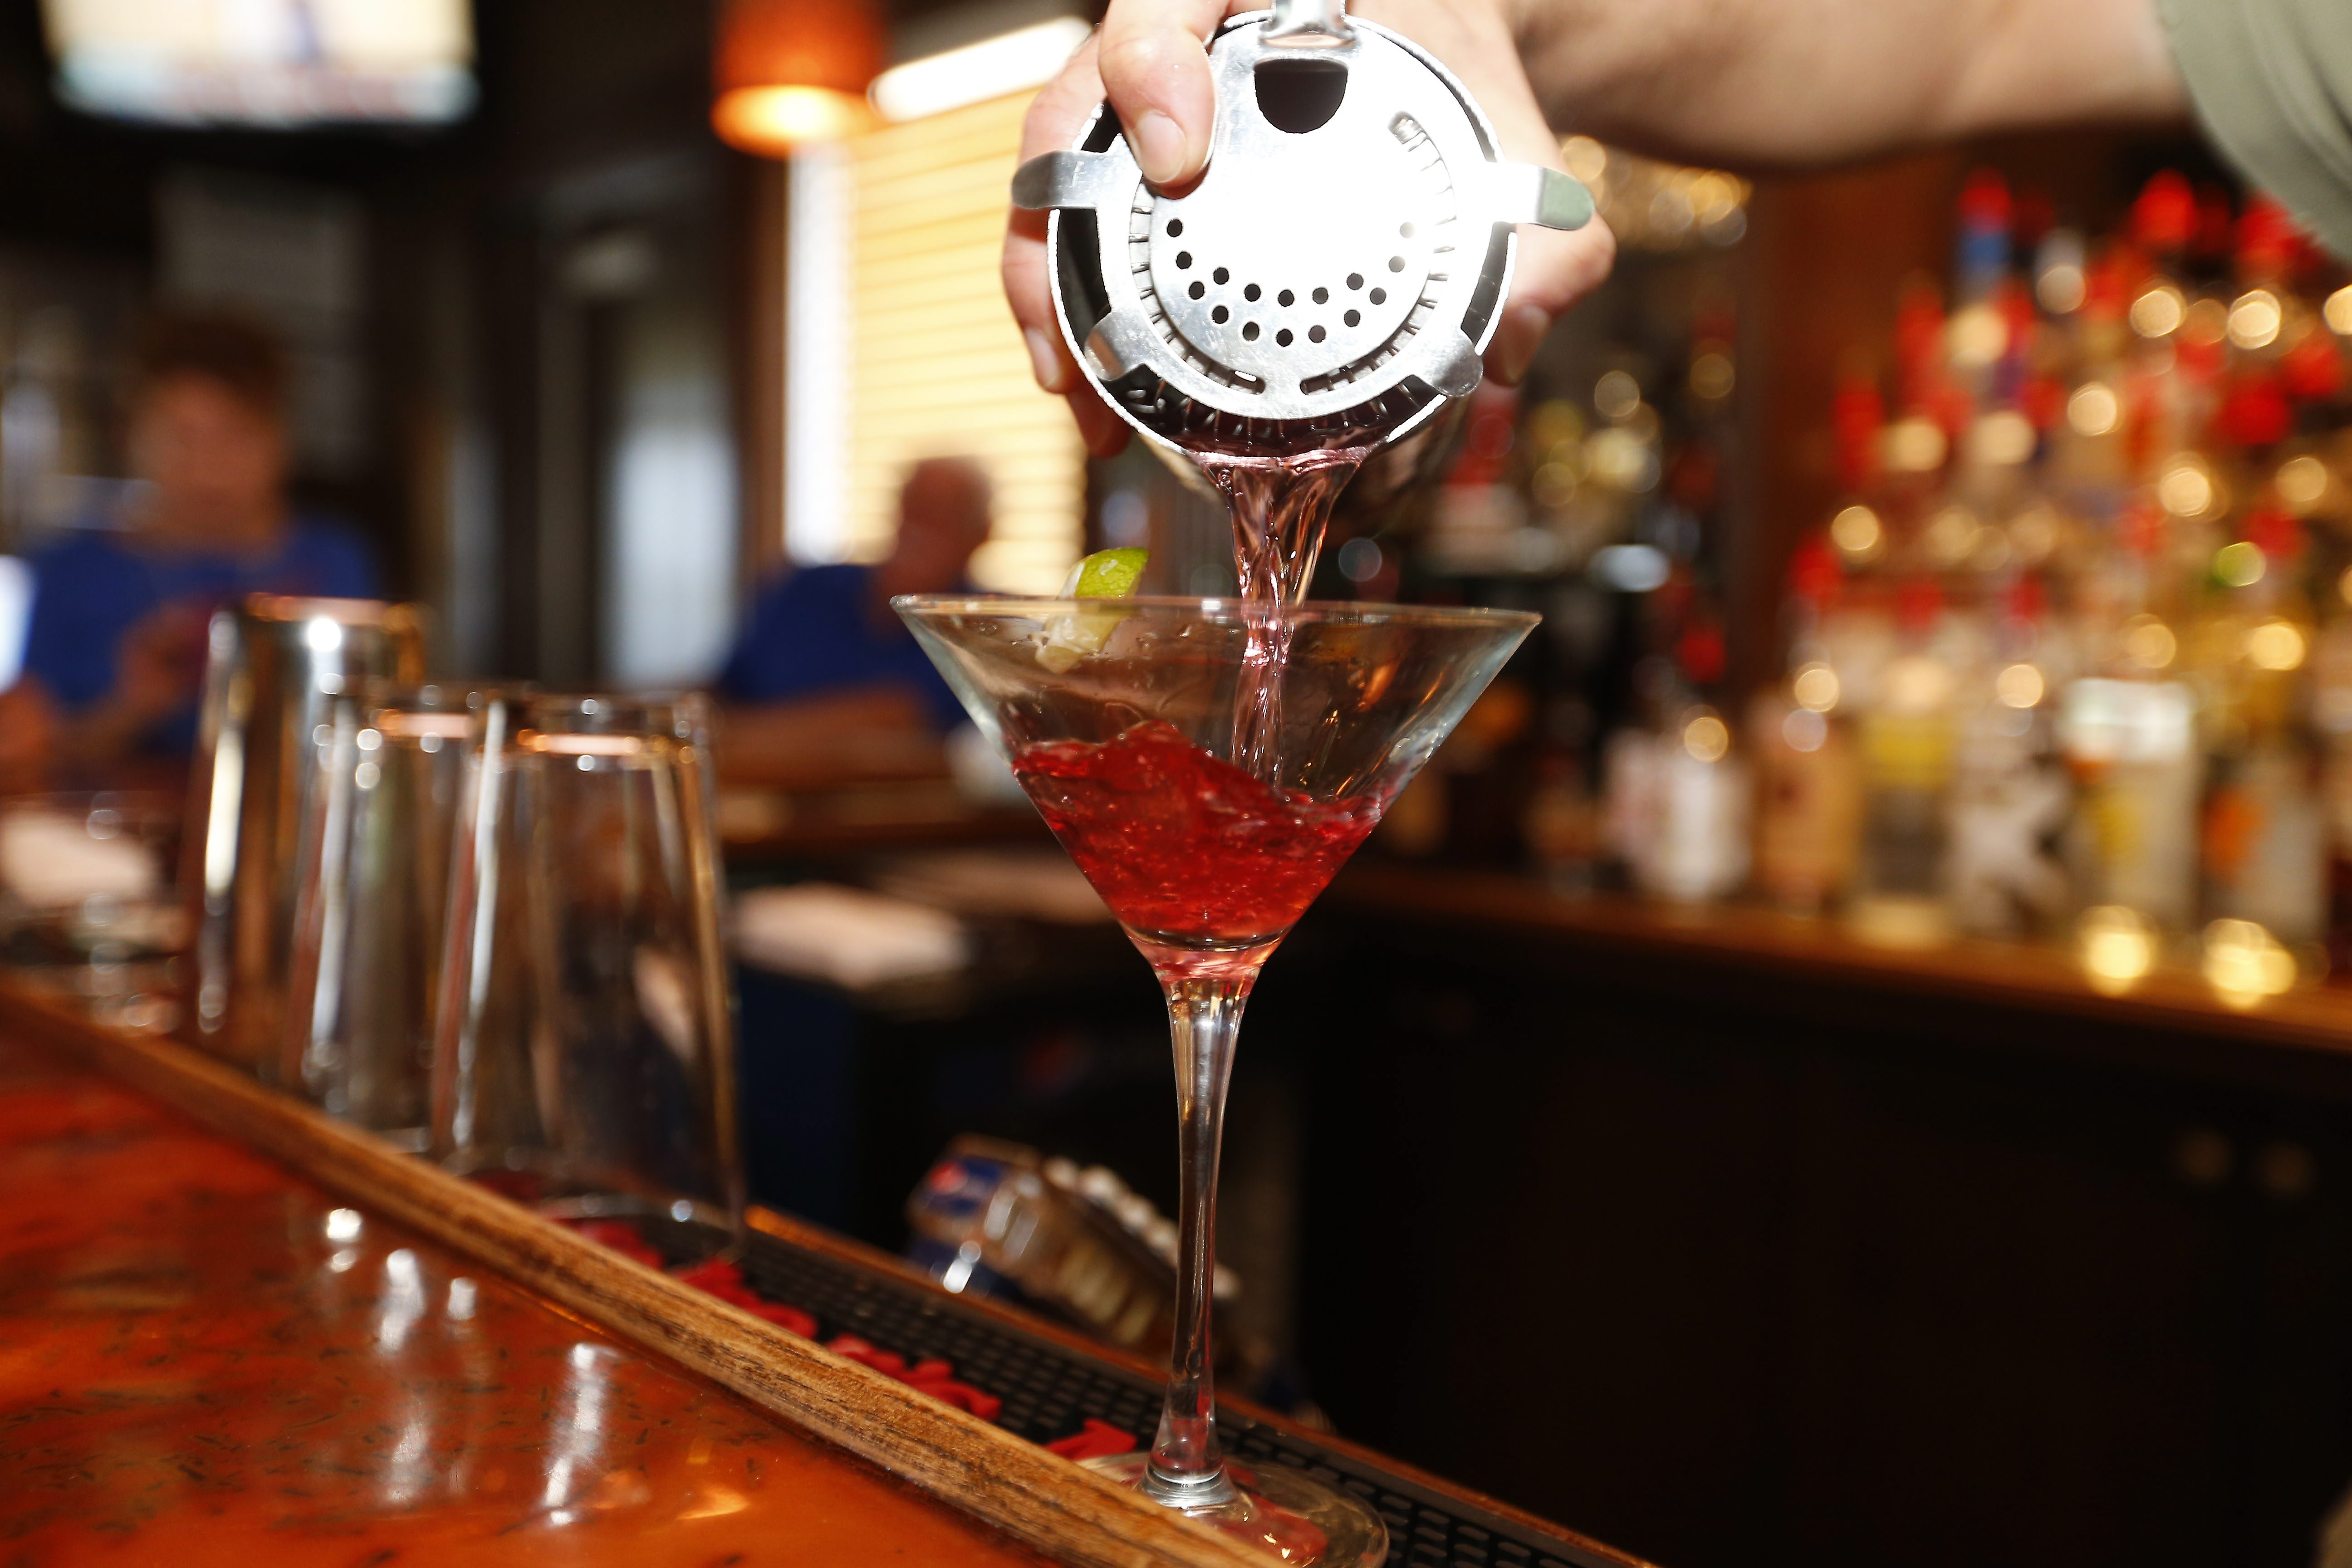 Enjoy a Cosmopolitan or another drink at the Waterstone Grill in Hamburg. (Mark Mulville/Buffalo News)